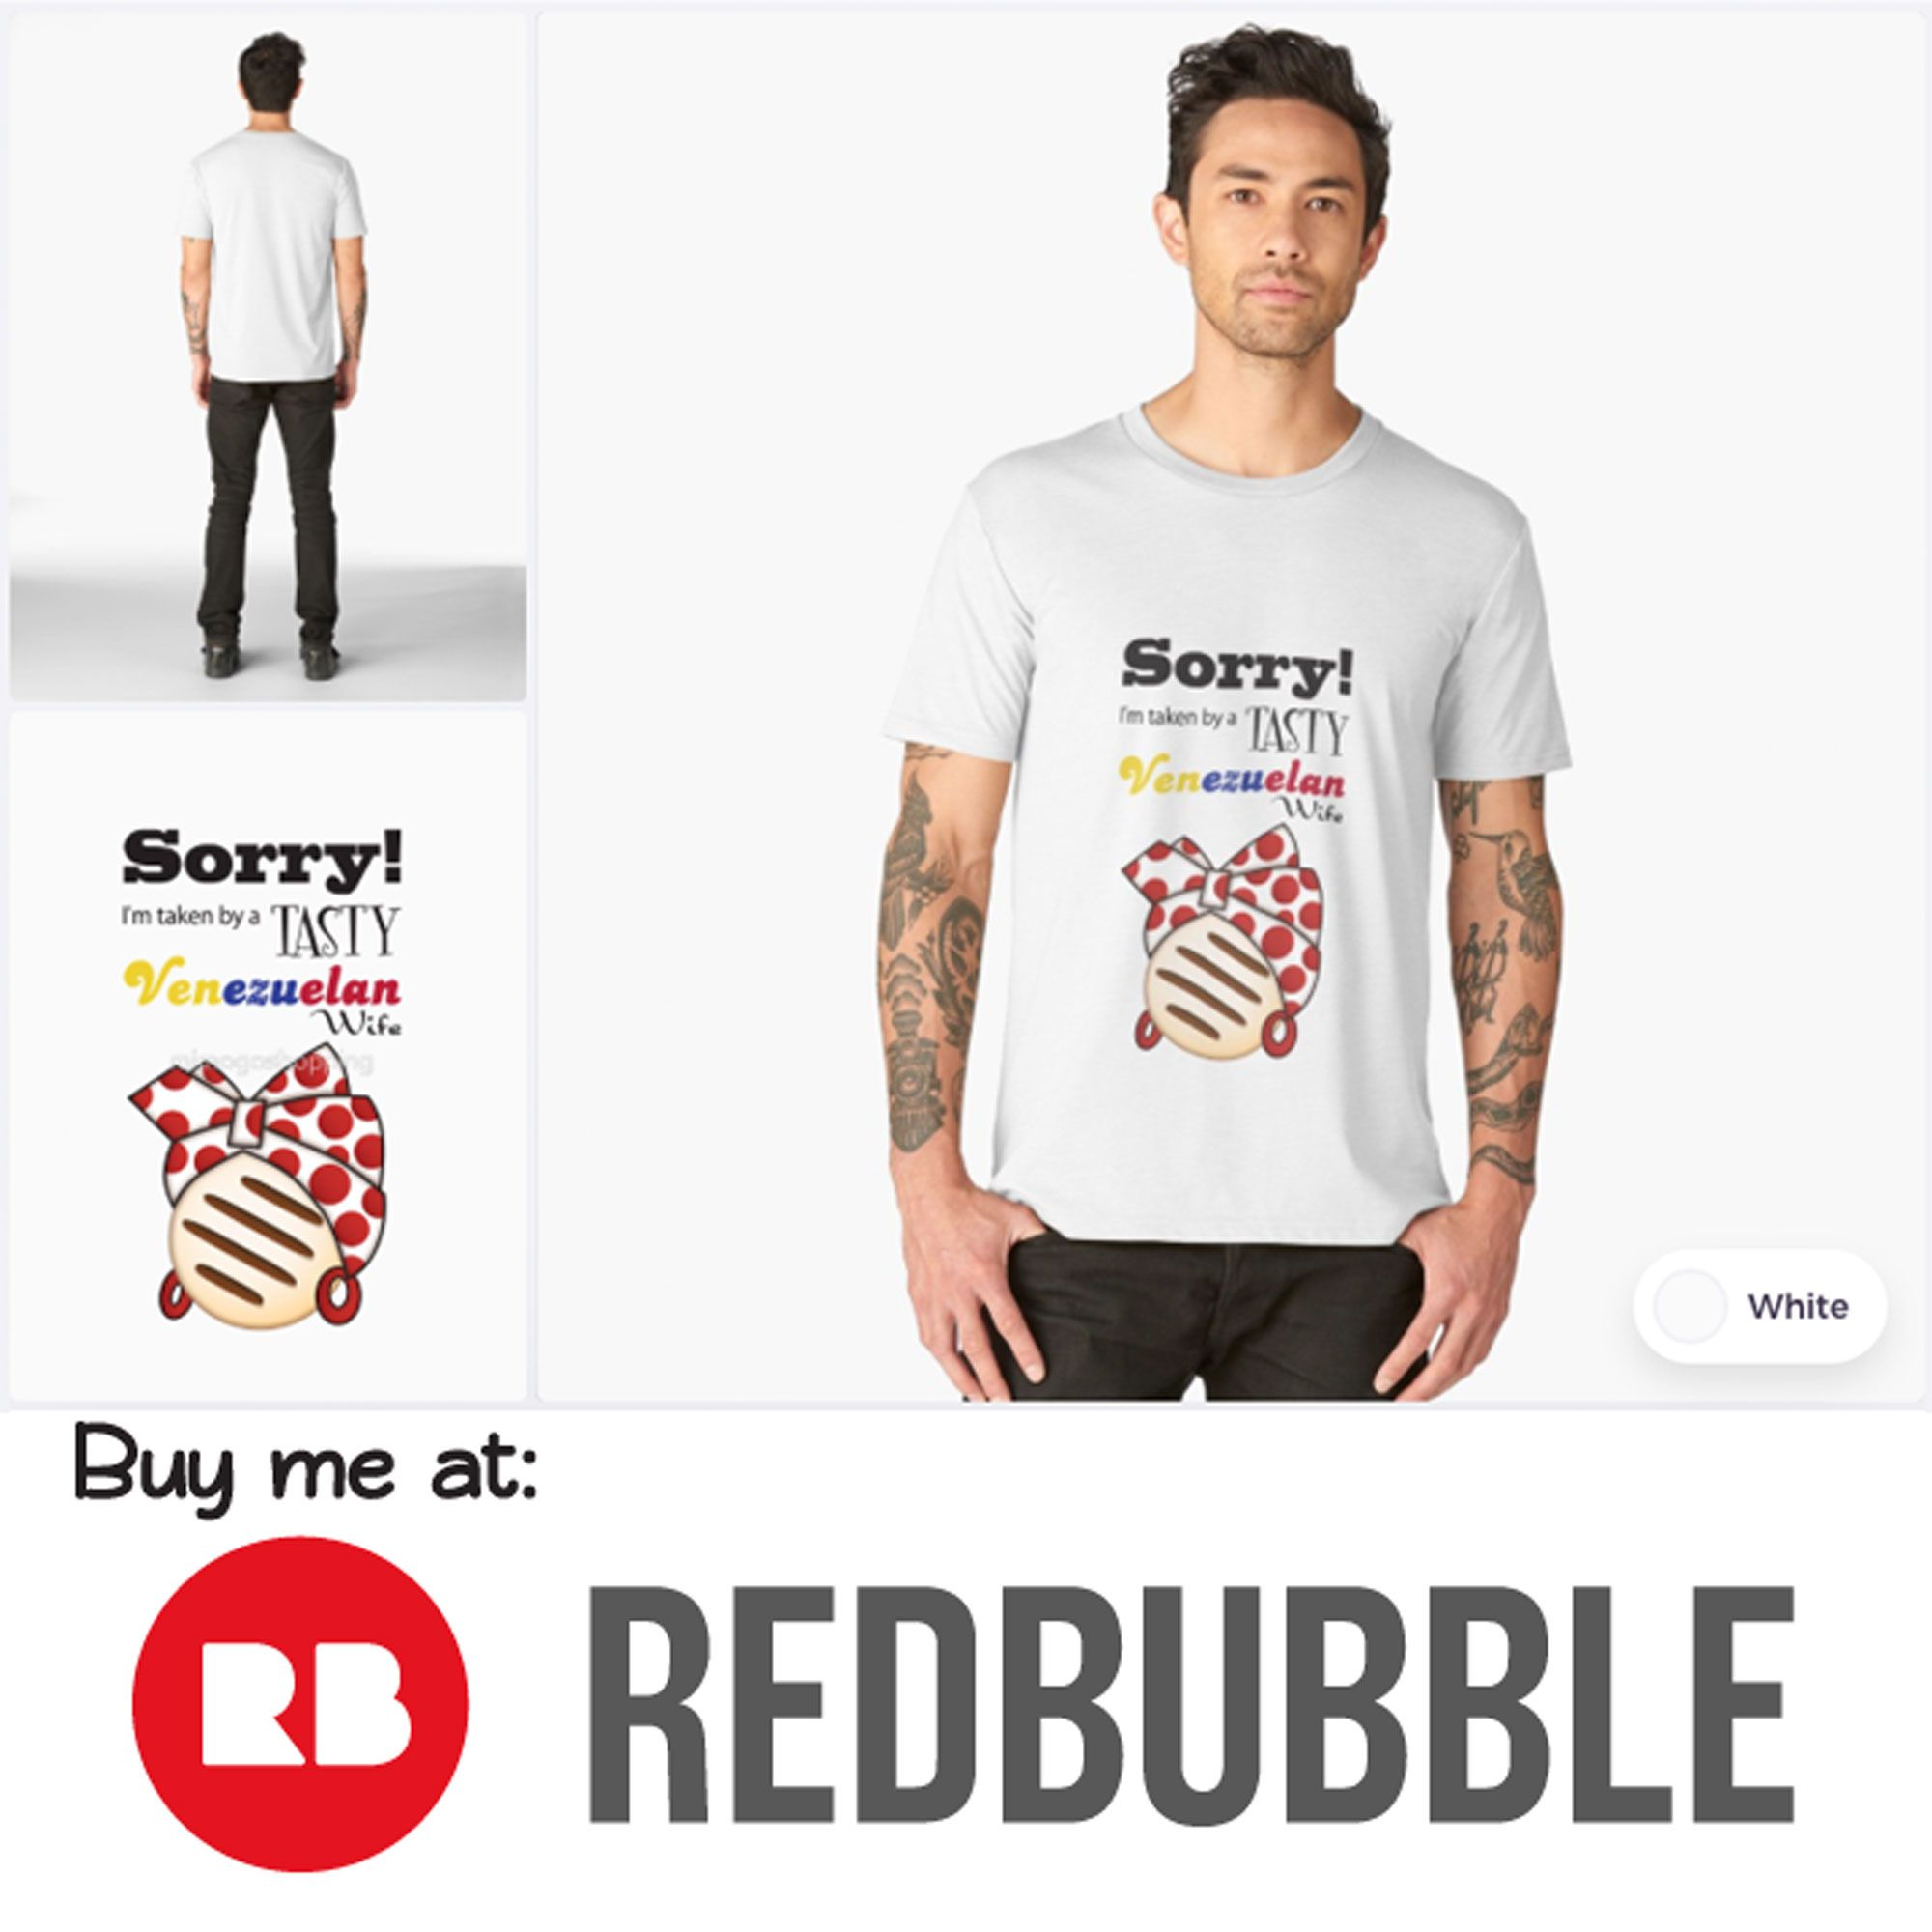 1ed84a2f How To Design Shirts For Redbubble - Cotswold Hire